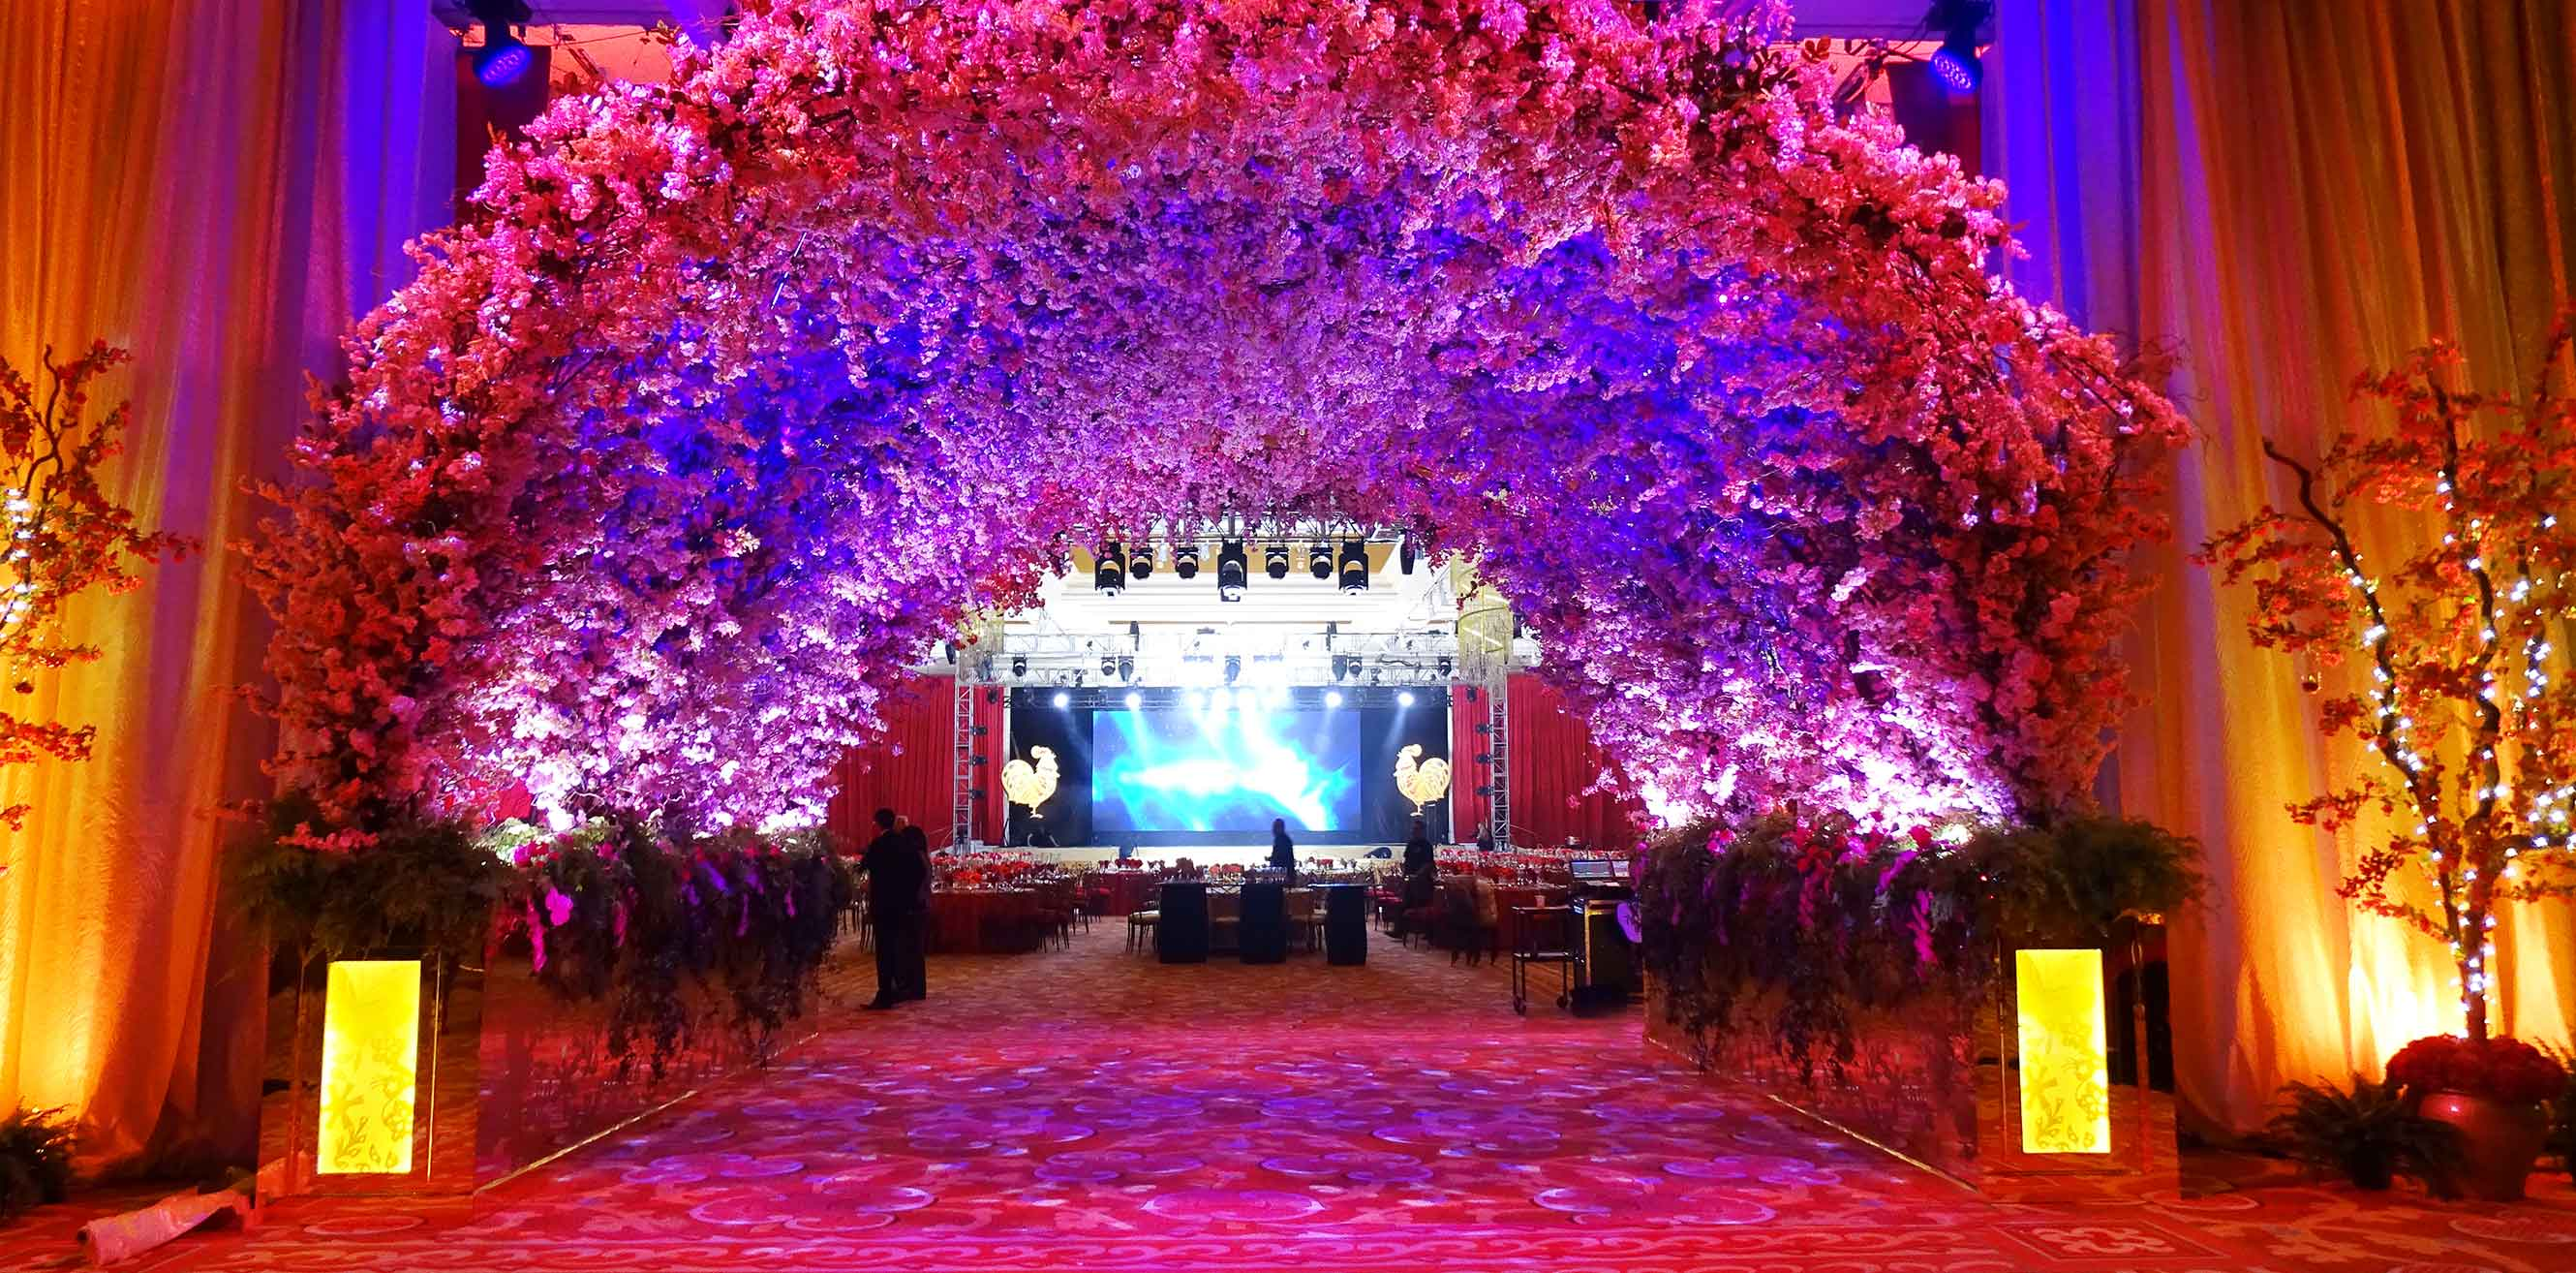 Floral arrangements forming a series of arches